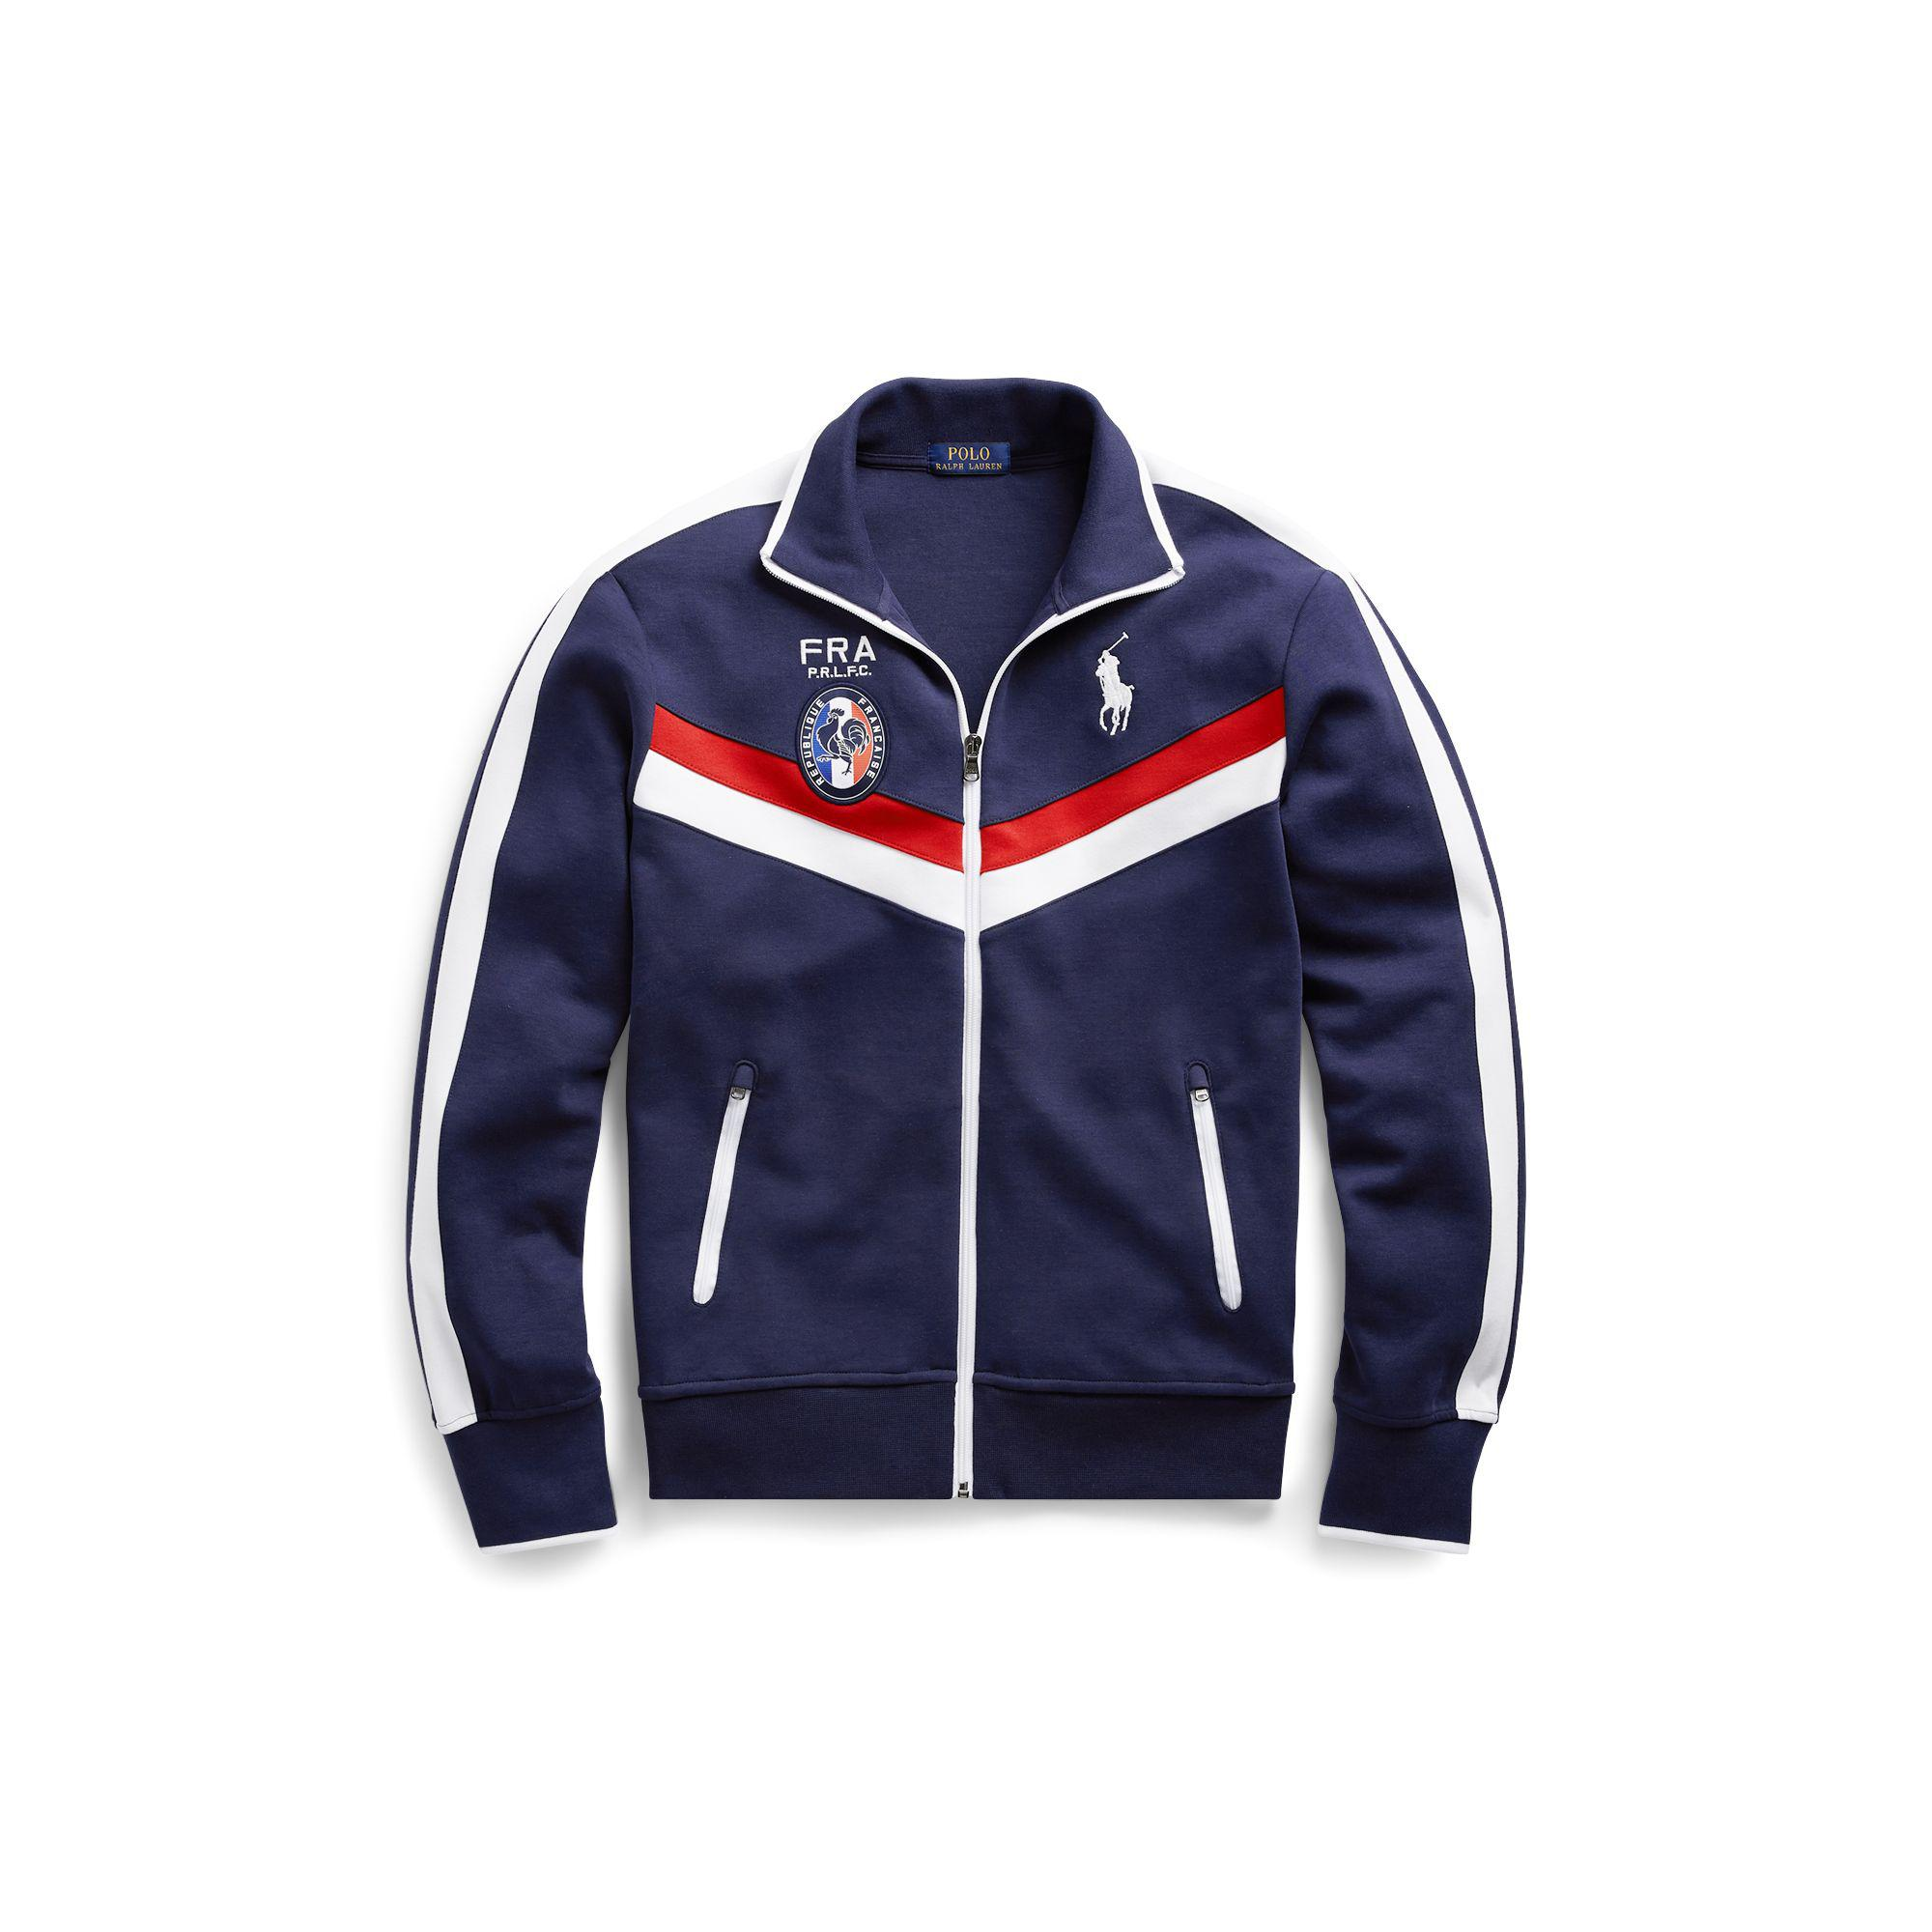 f36fd9be430 Polo Ralph Lauren France Track Jacket in Blue for Men - Lyst